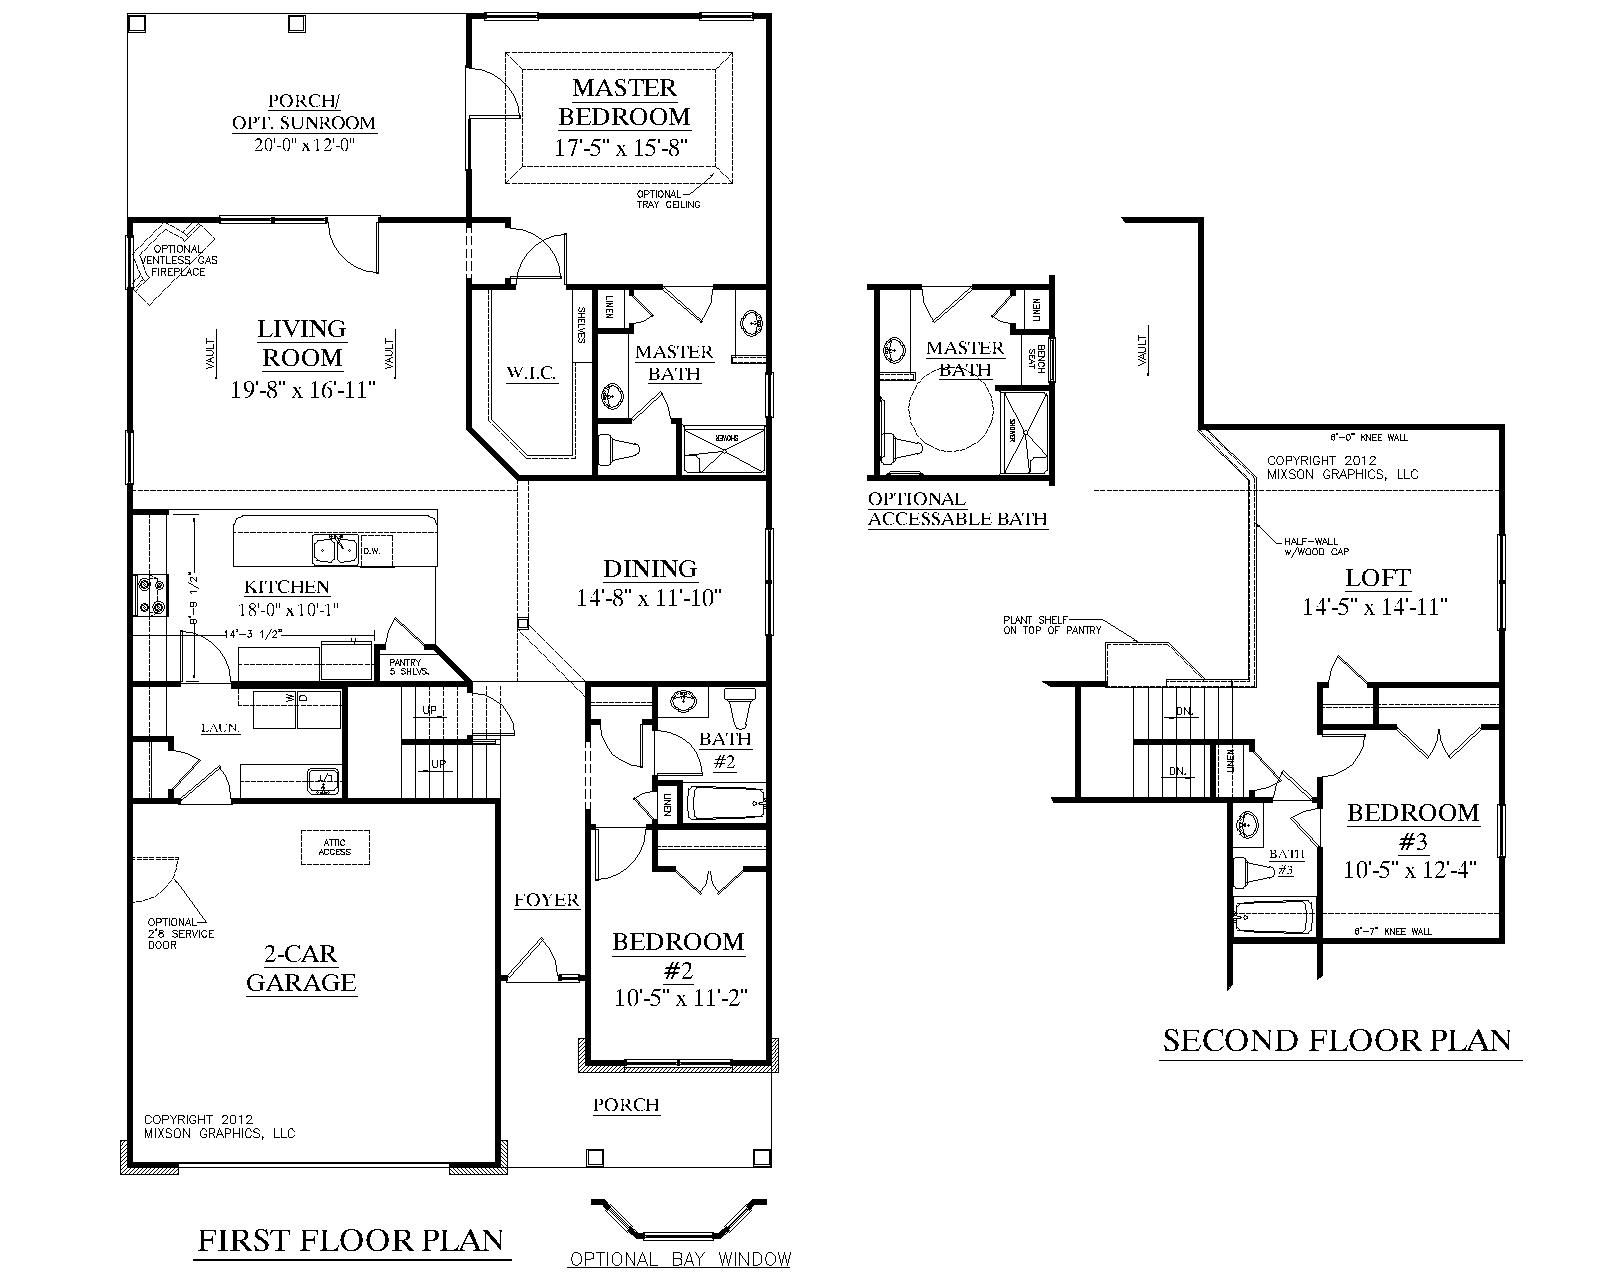 House plan 2224 kingstree floor plan traditional 1 1 2 2 story traditional house plans